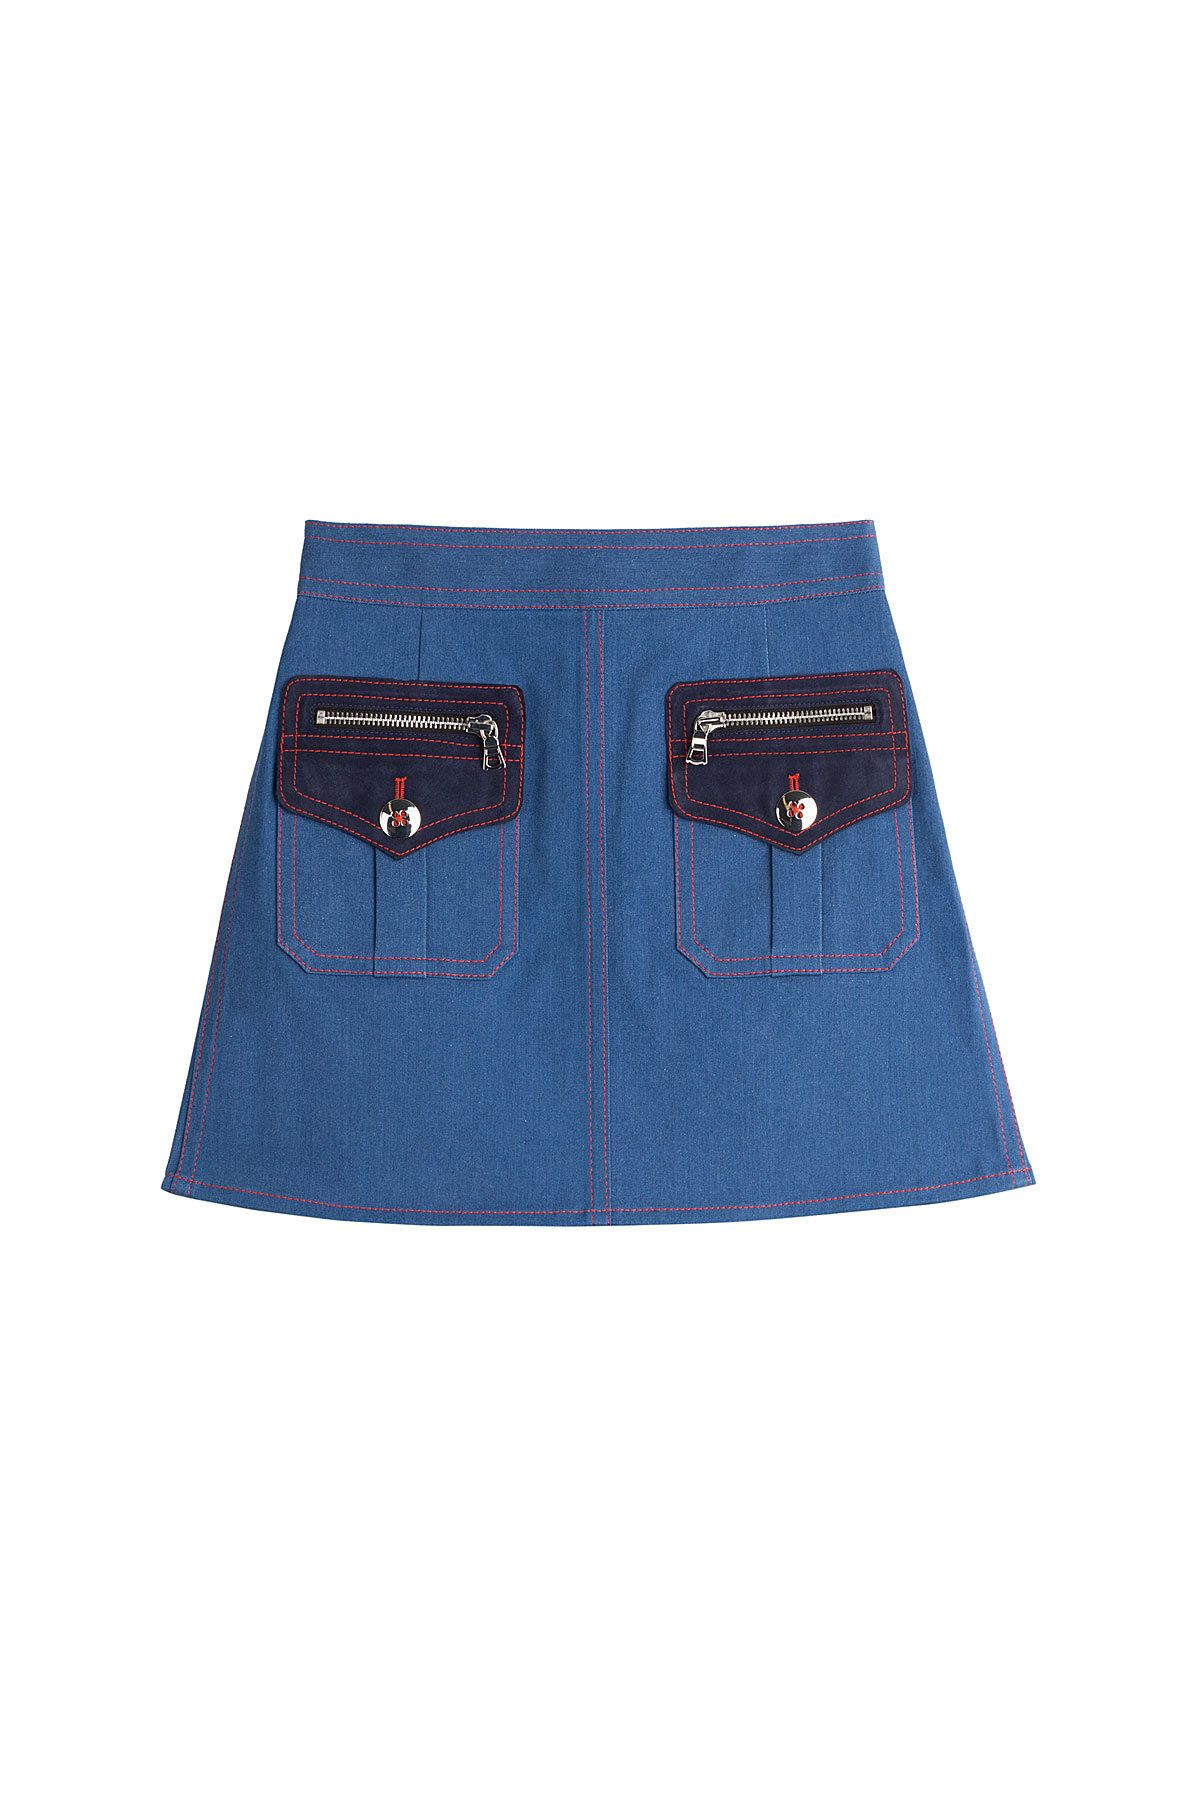 c81aa41aa Marc Jacobs Denim Mini Skirt | DENIM SKIRTS FOREVER! | Denim mini ...